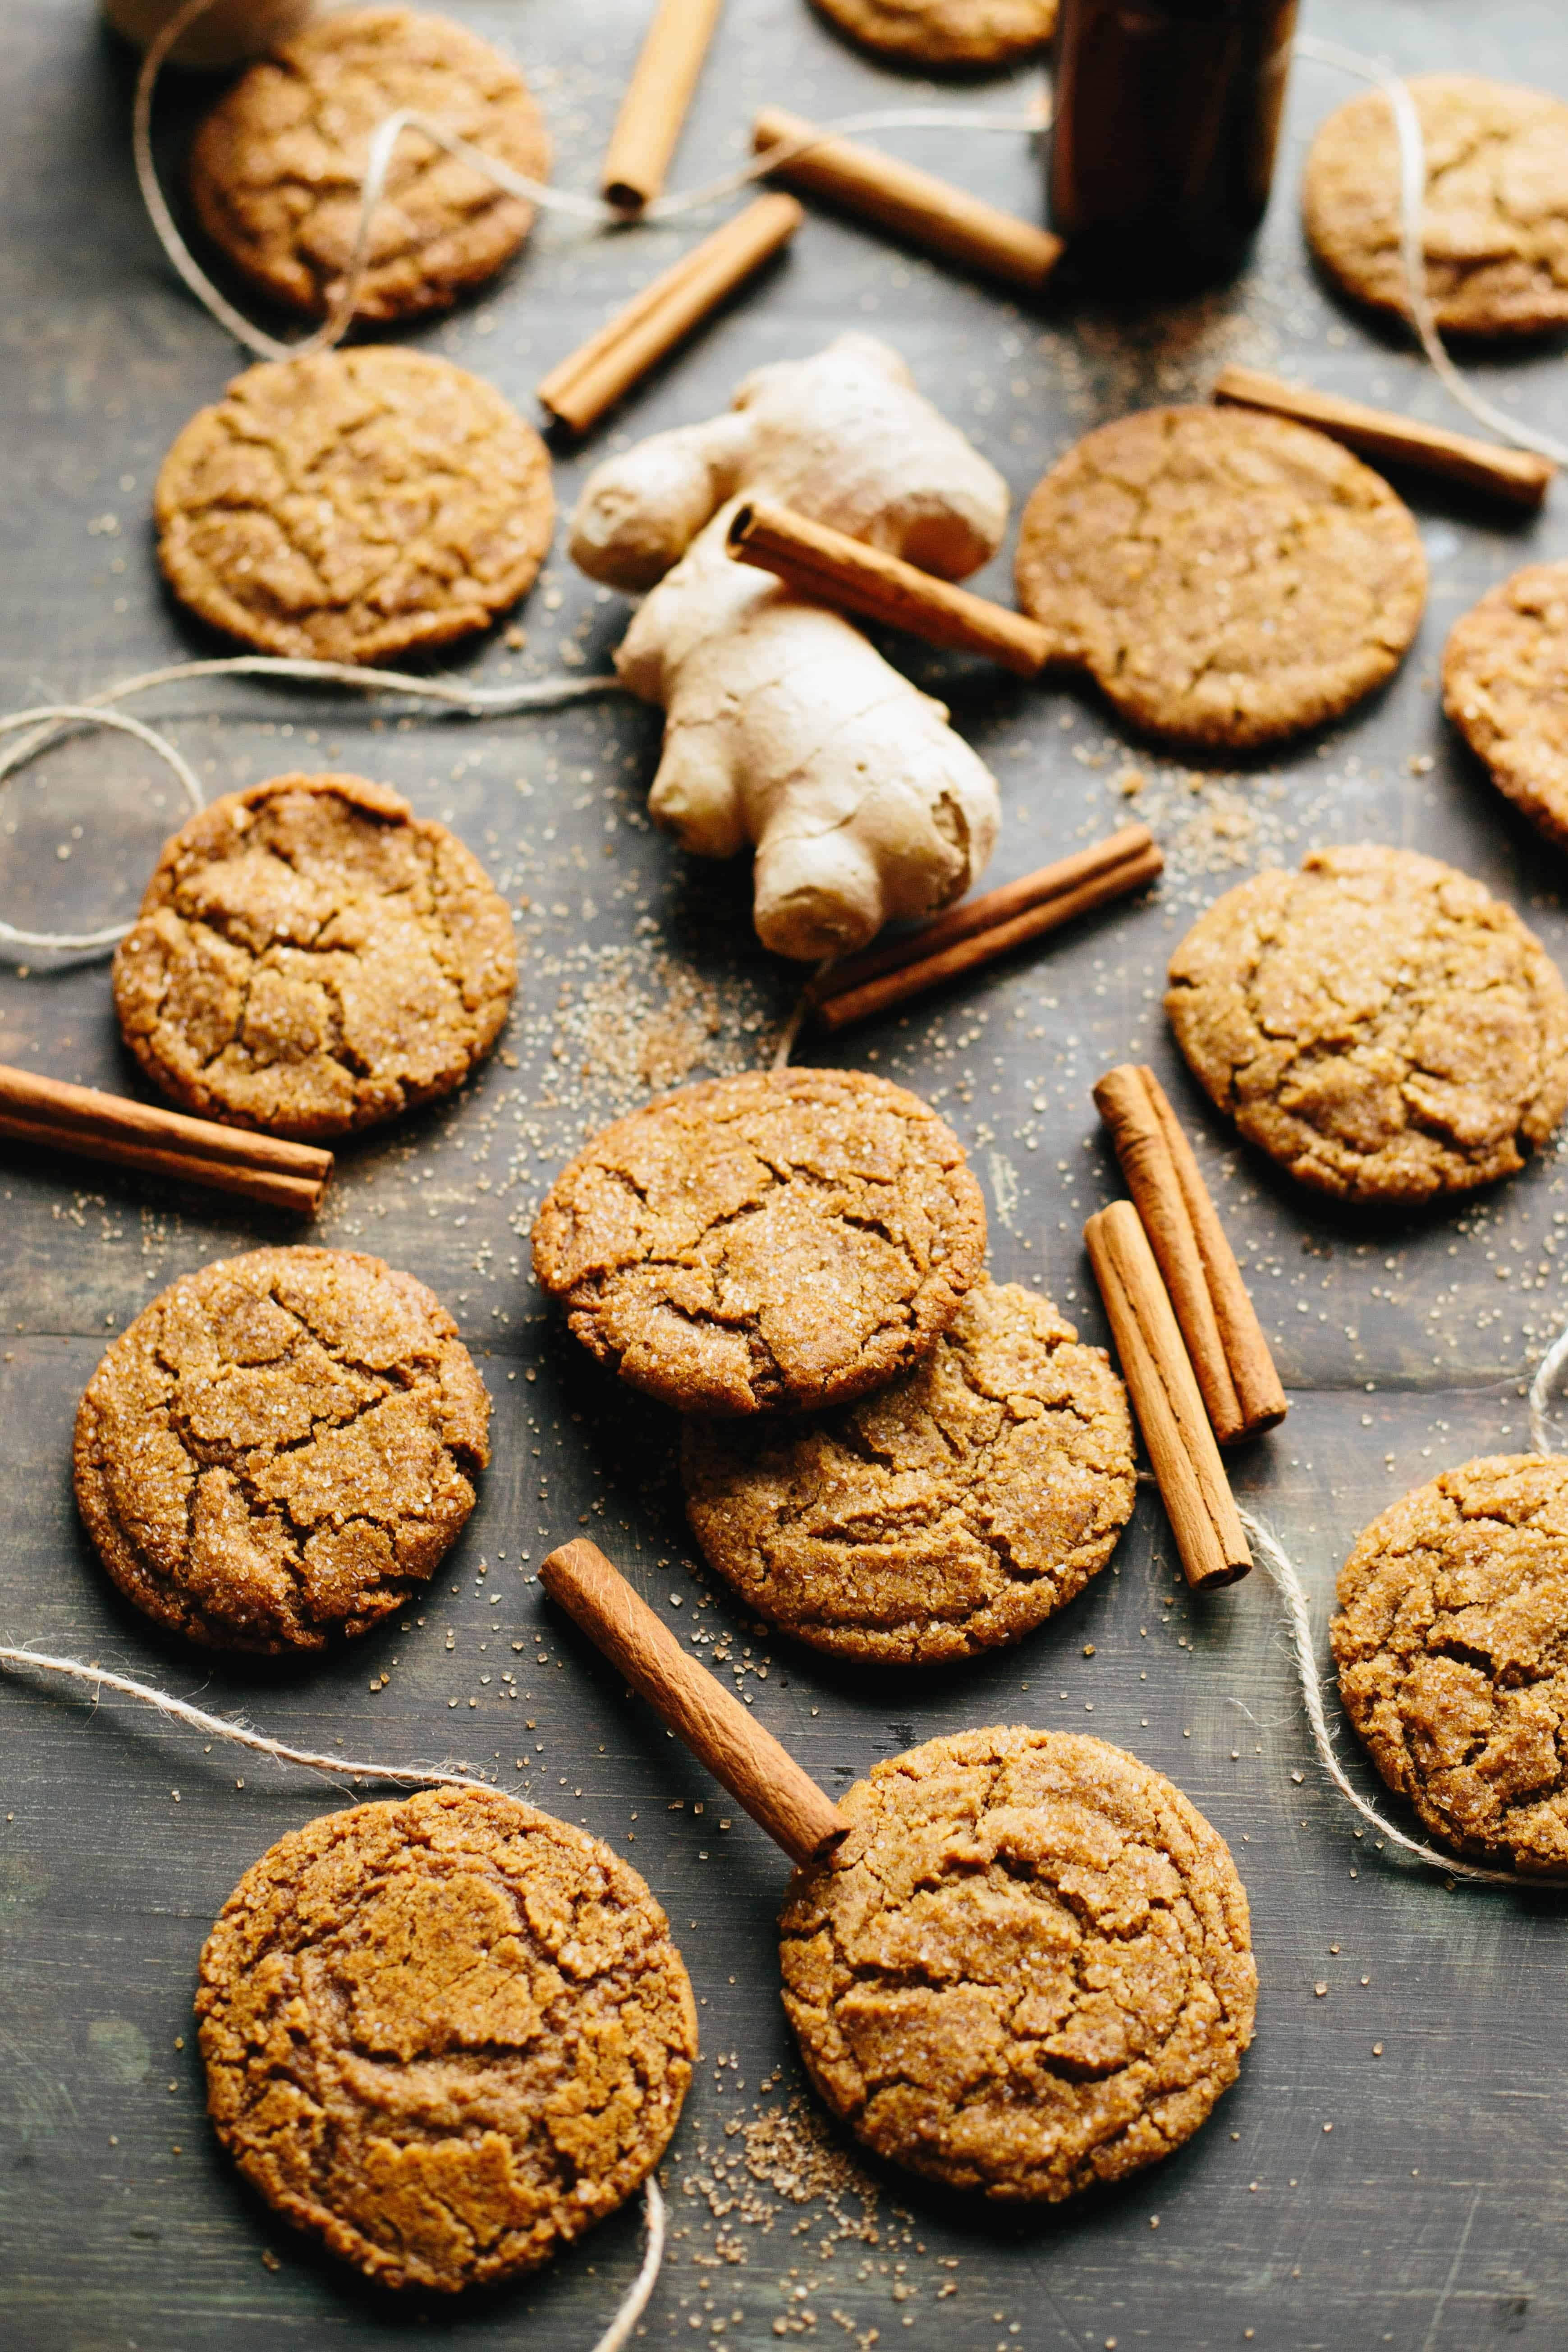 Brown Butter Ginger Molasses Cookies randomly spread out on a table with cinnamon sticks, fresh ginger and twine